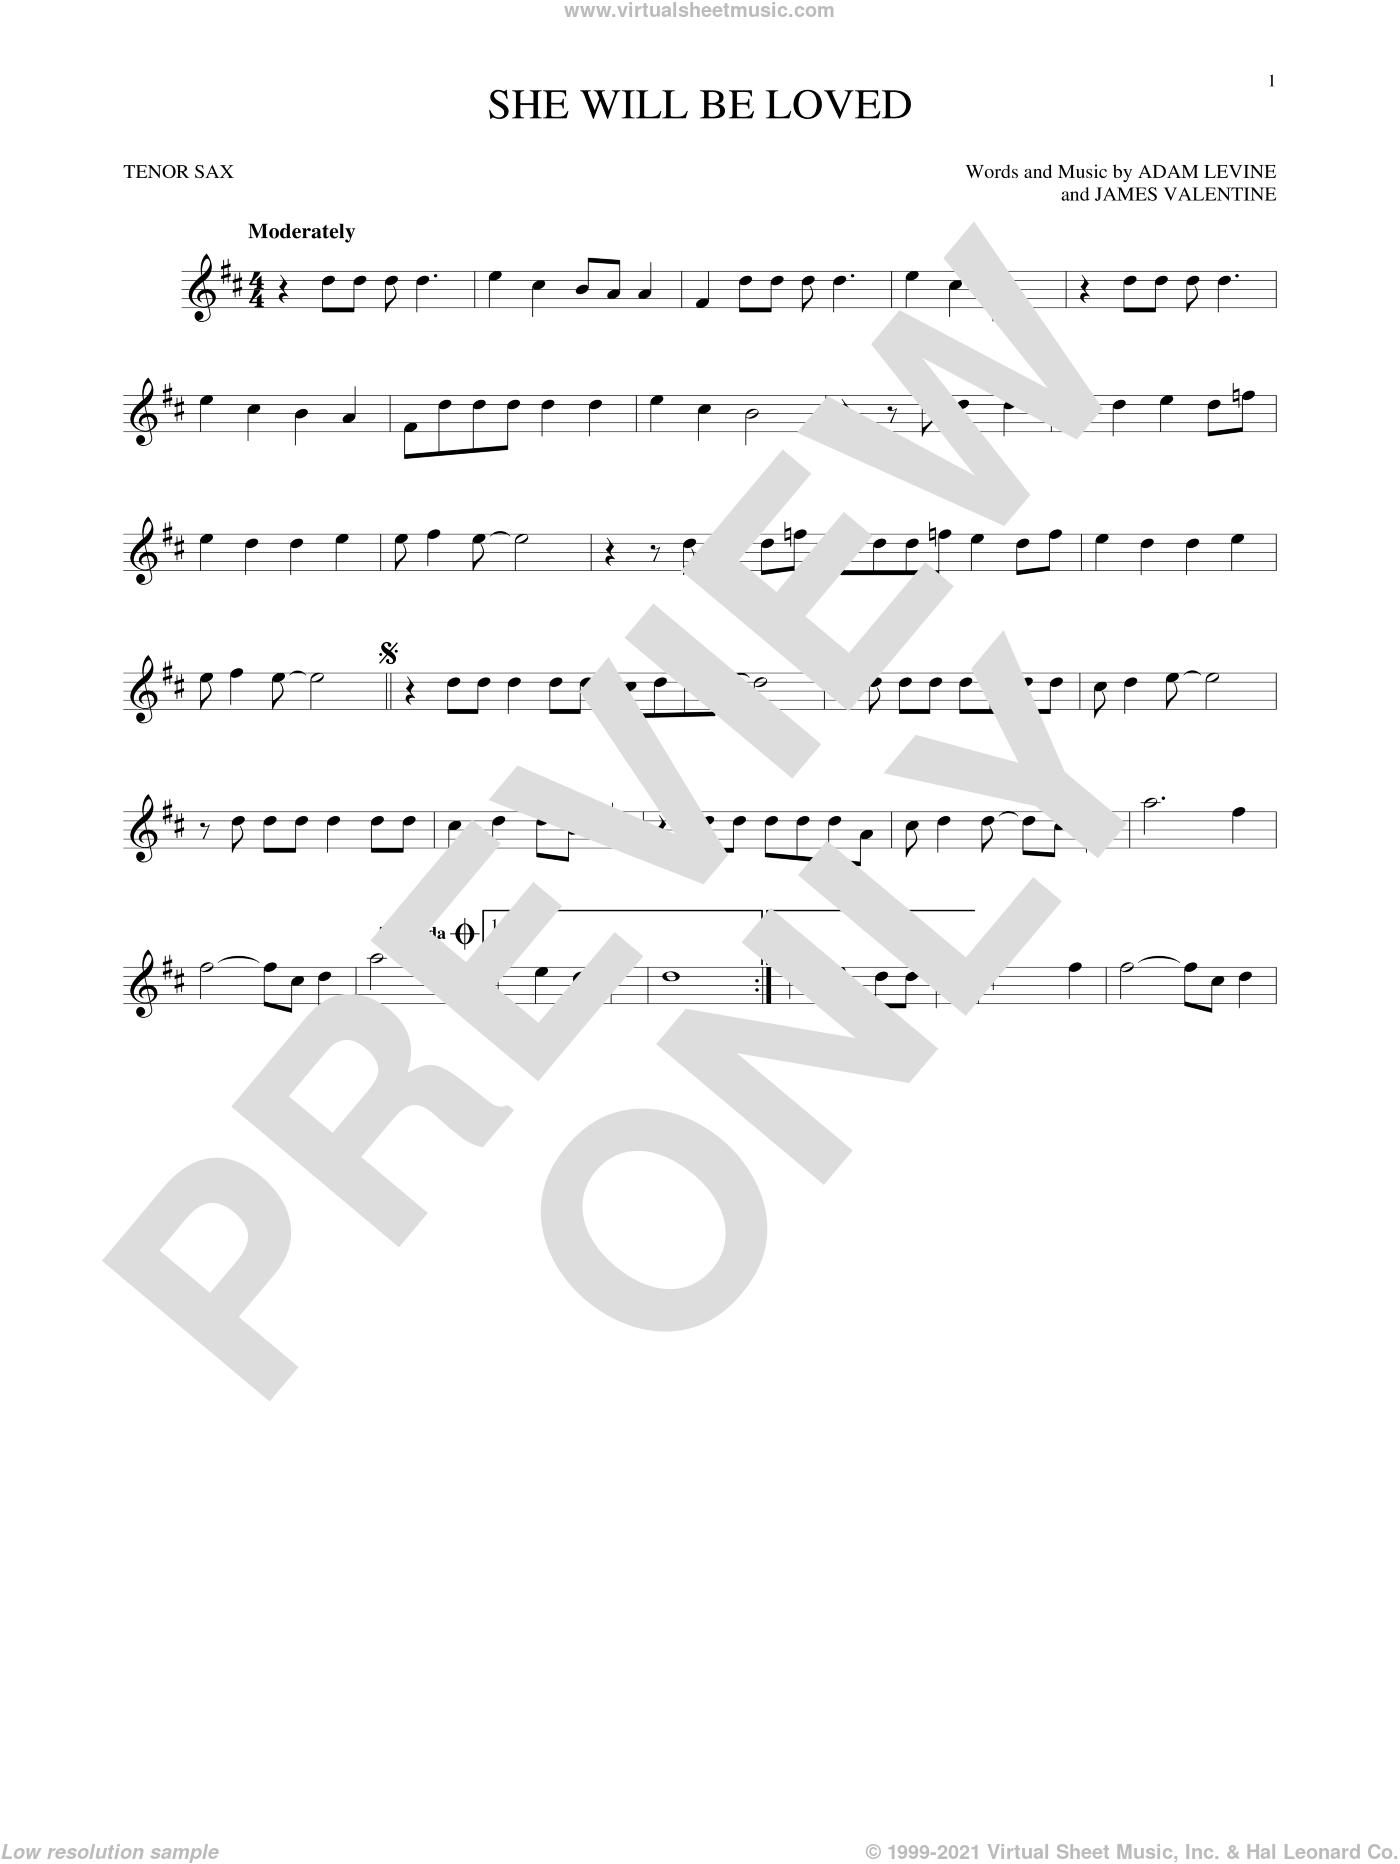 She Will Be Loved sheet music for tenor saxophone solo by Maroon 5, Adam Levine and James Valentine, intermediate